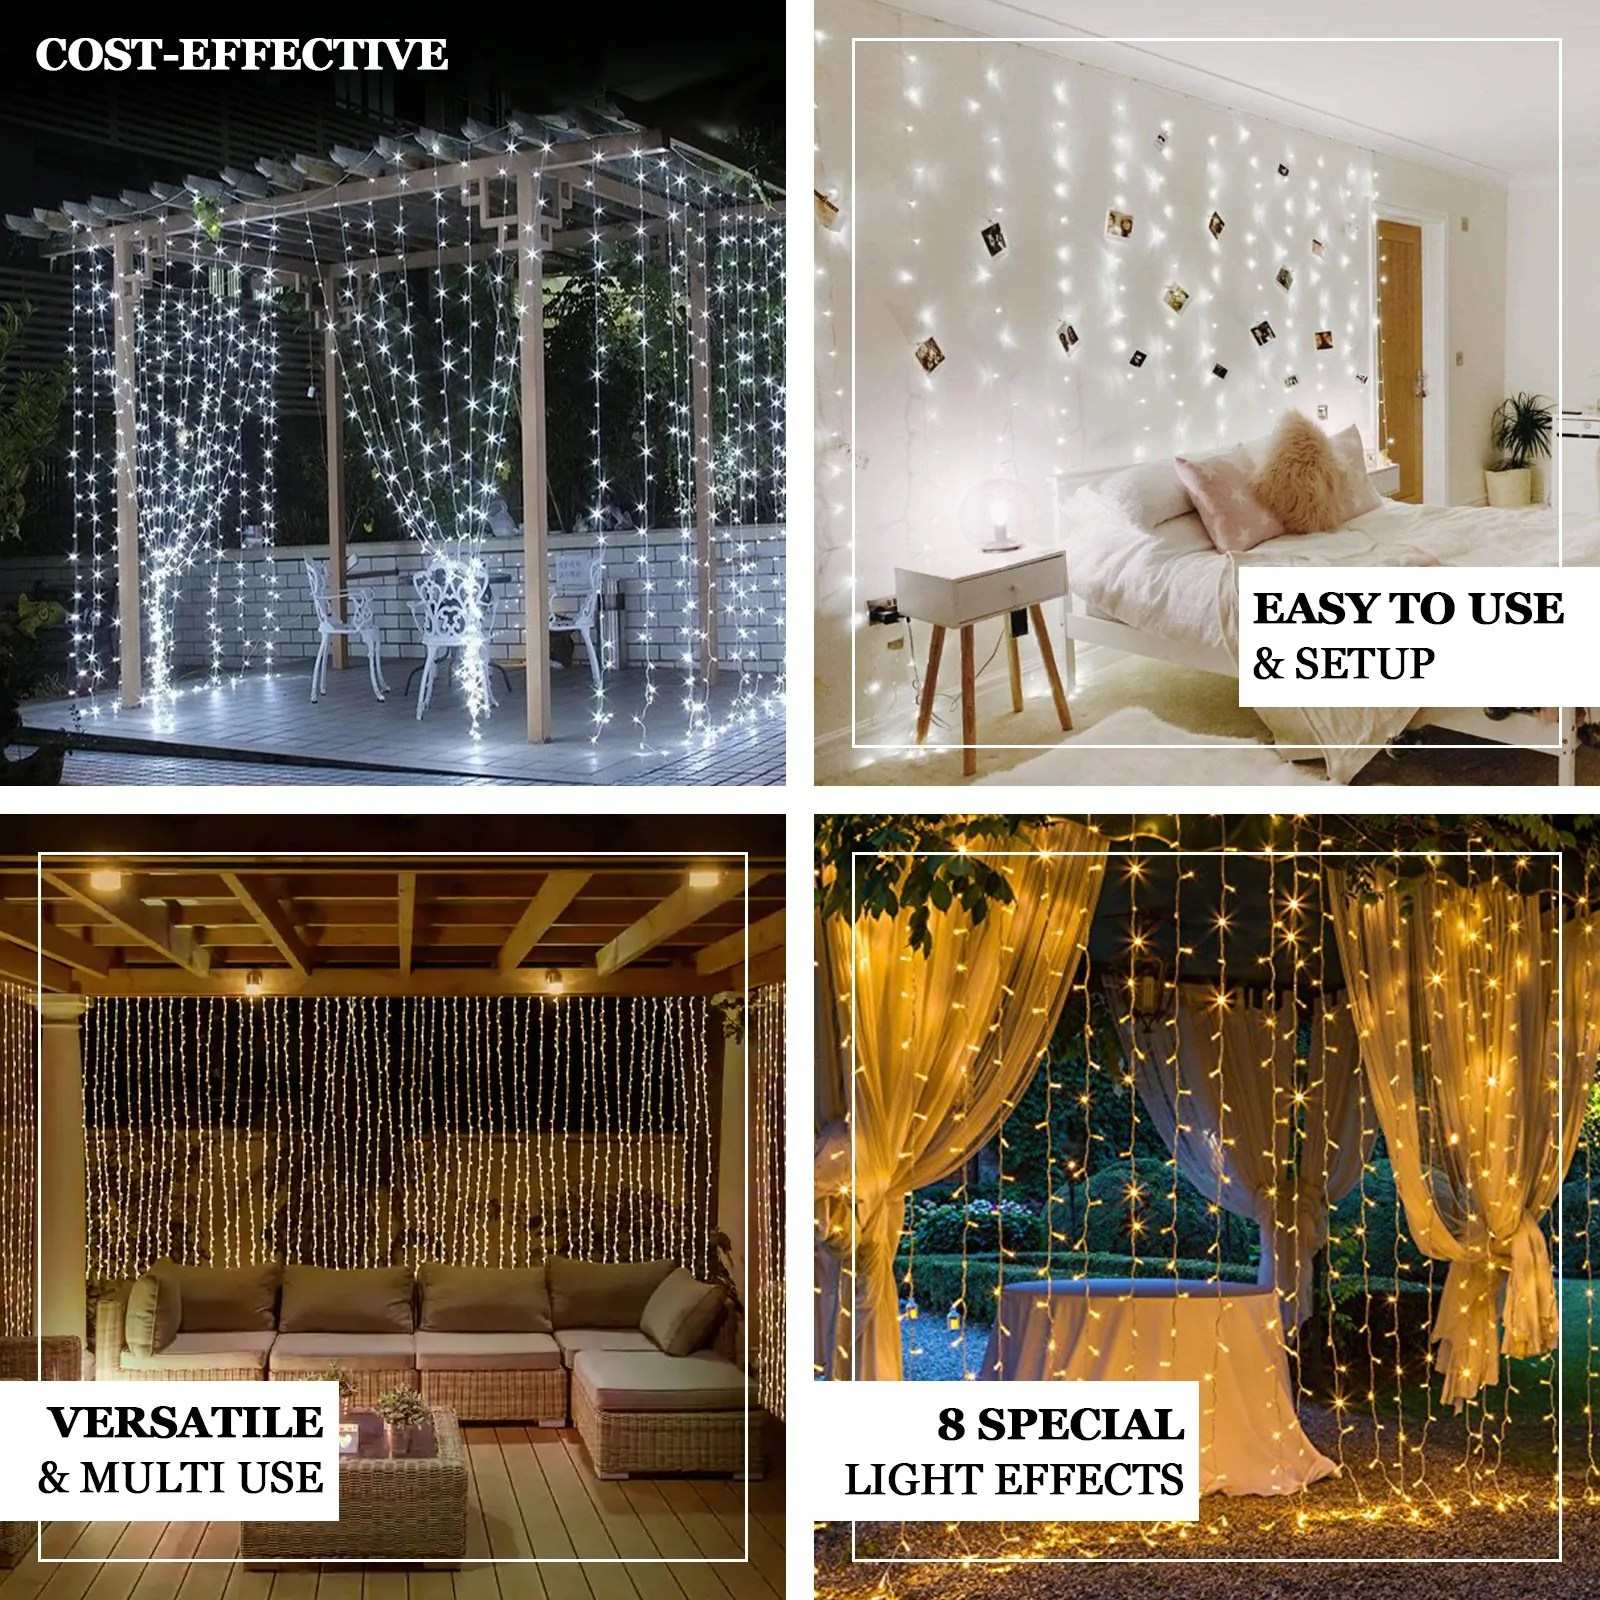 10ftx10ft warm white 300 led icicle lights backdrop curtain lights with 8 lighting modes